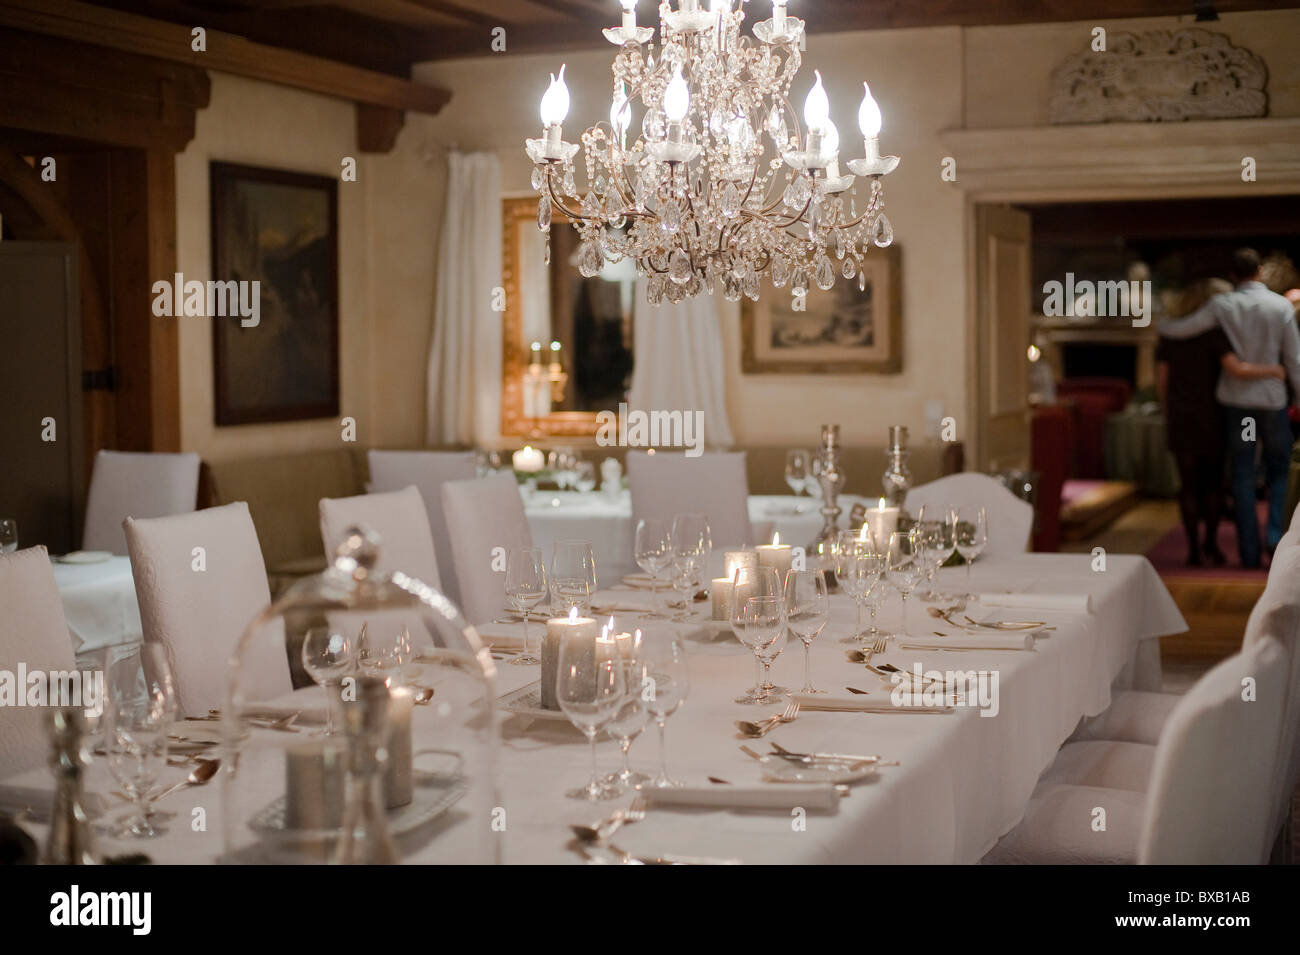 Festively decorated dining room - Stock Image